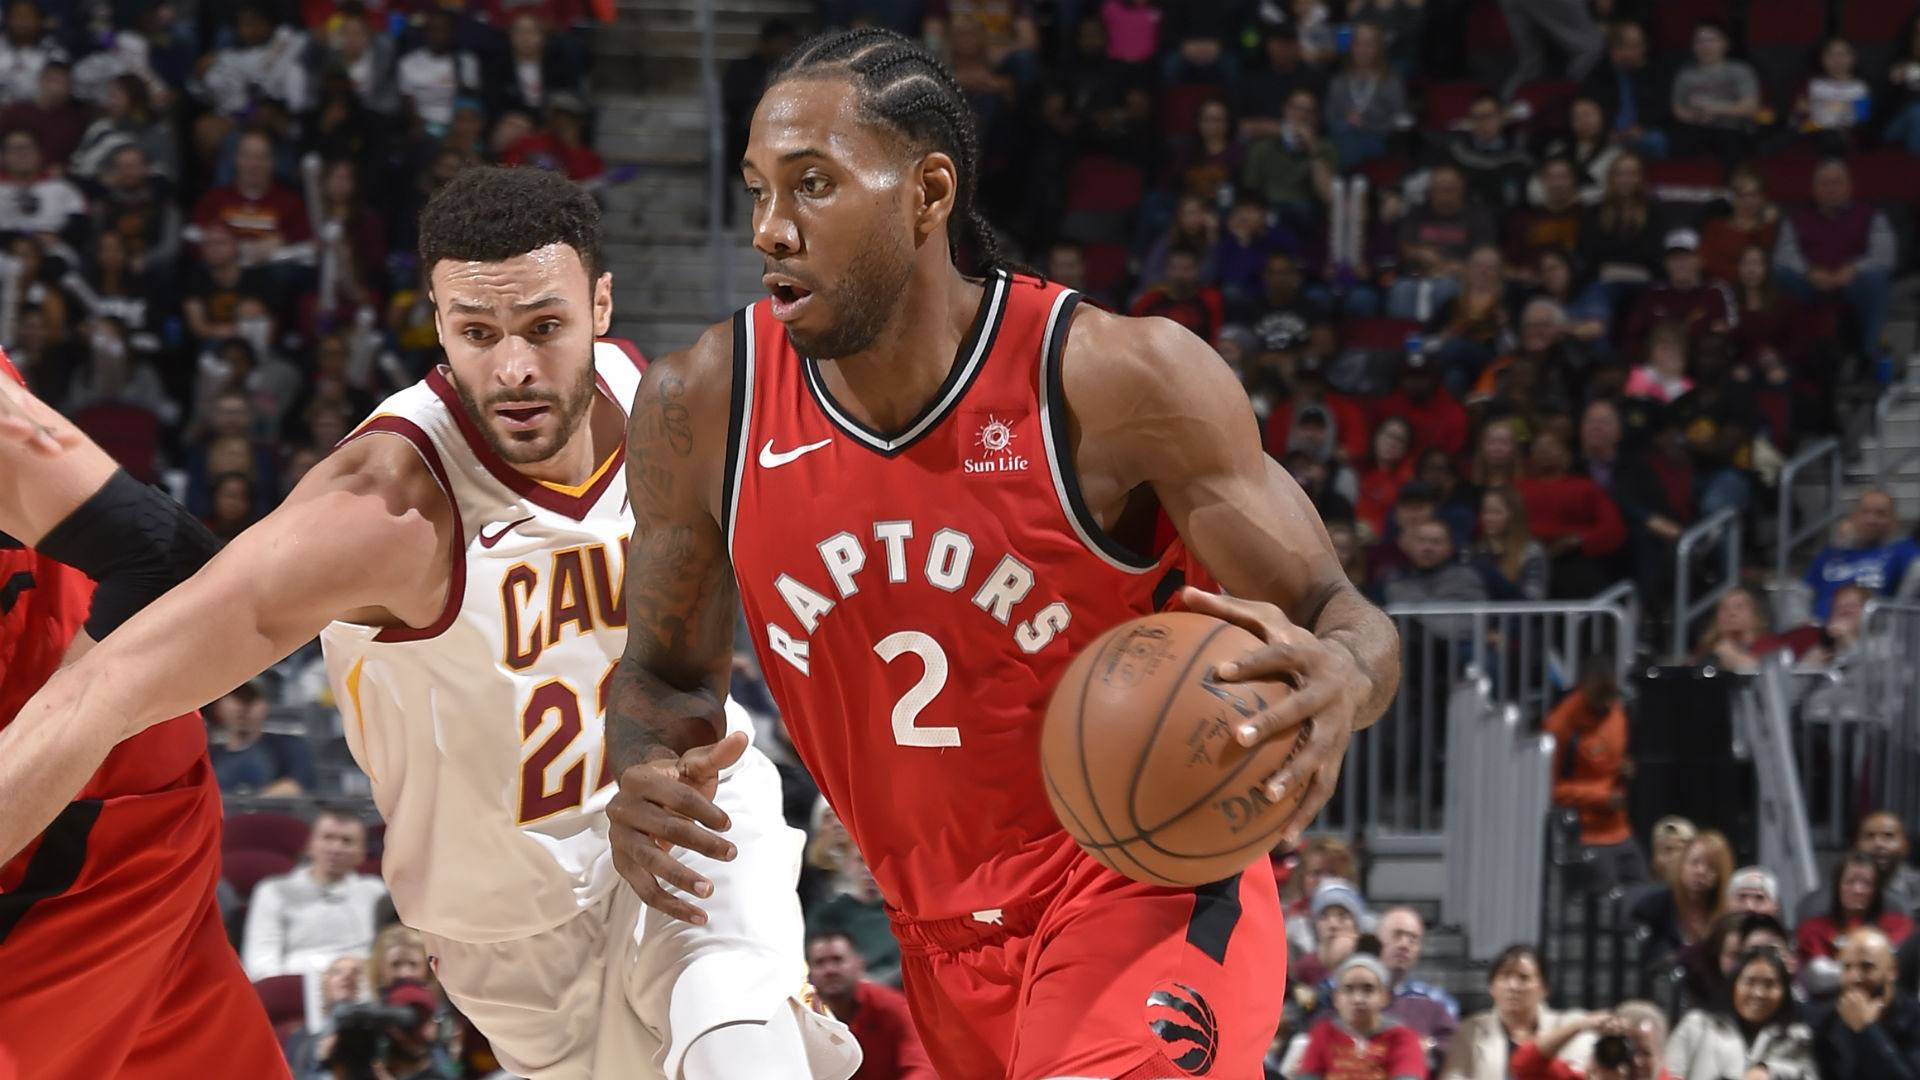 Jeremy Lin Raptors: How Kyle Lowry Is Helping Jeremy Lin Get His Groove Back